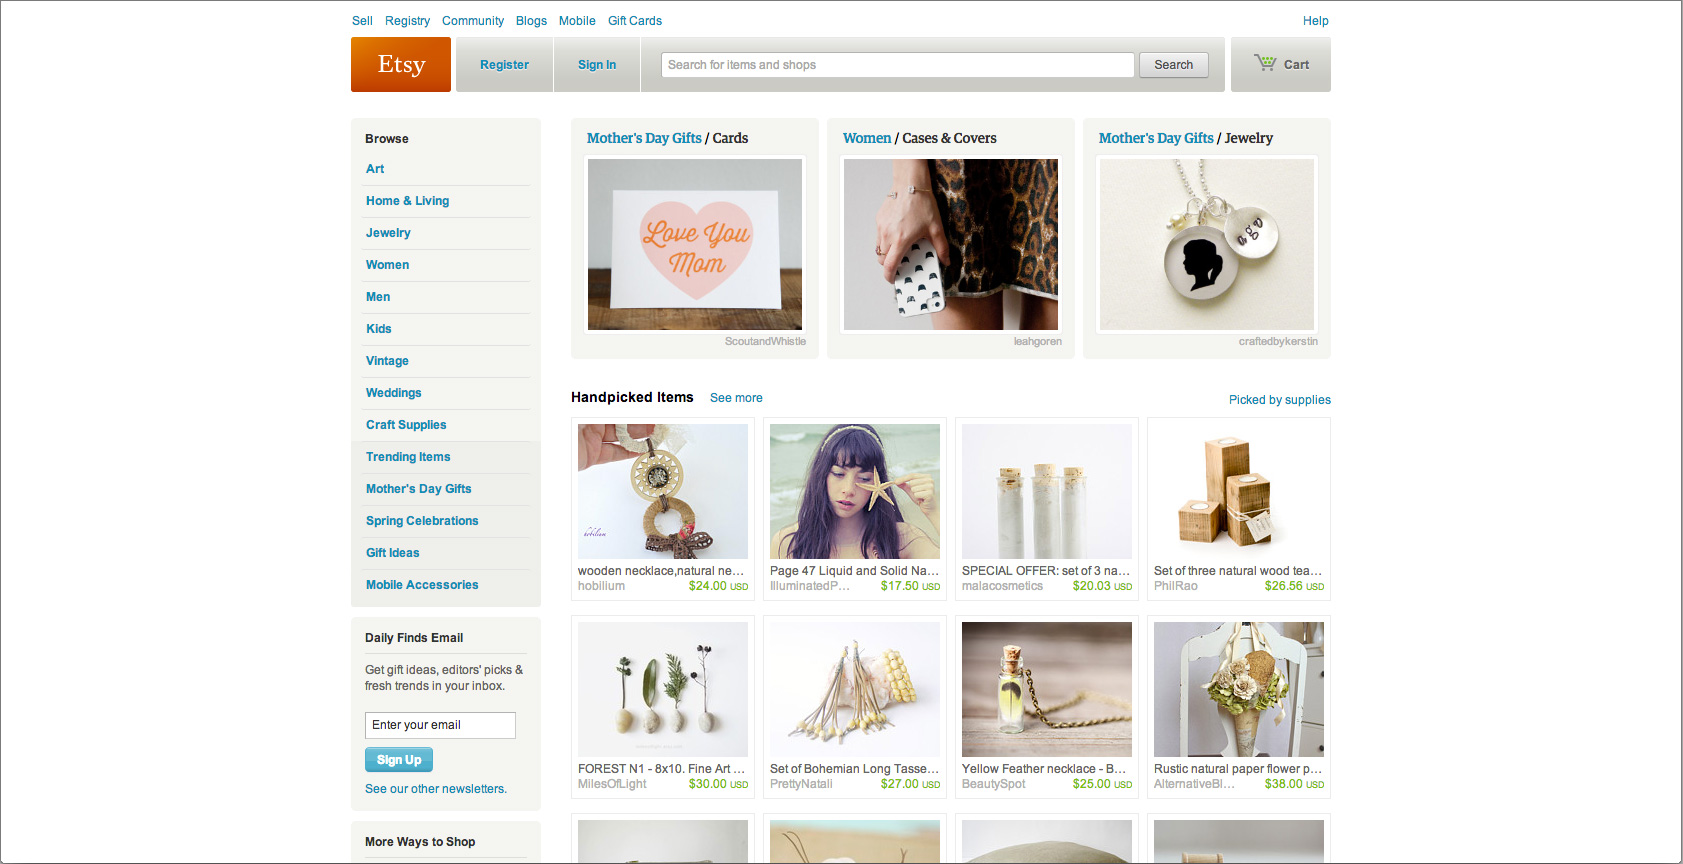 Etsy's Home Page